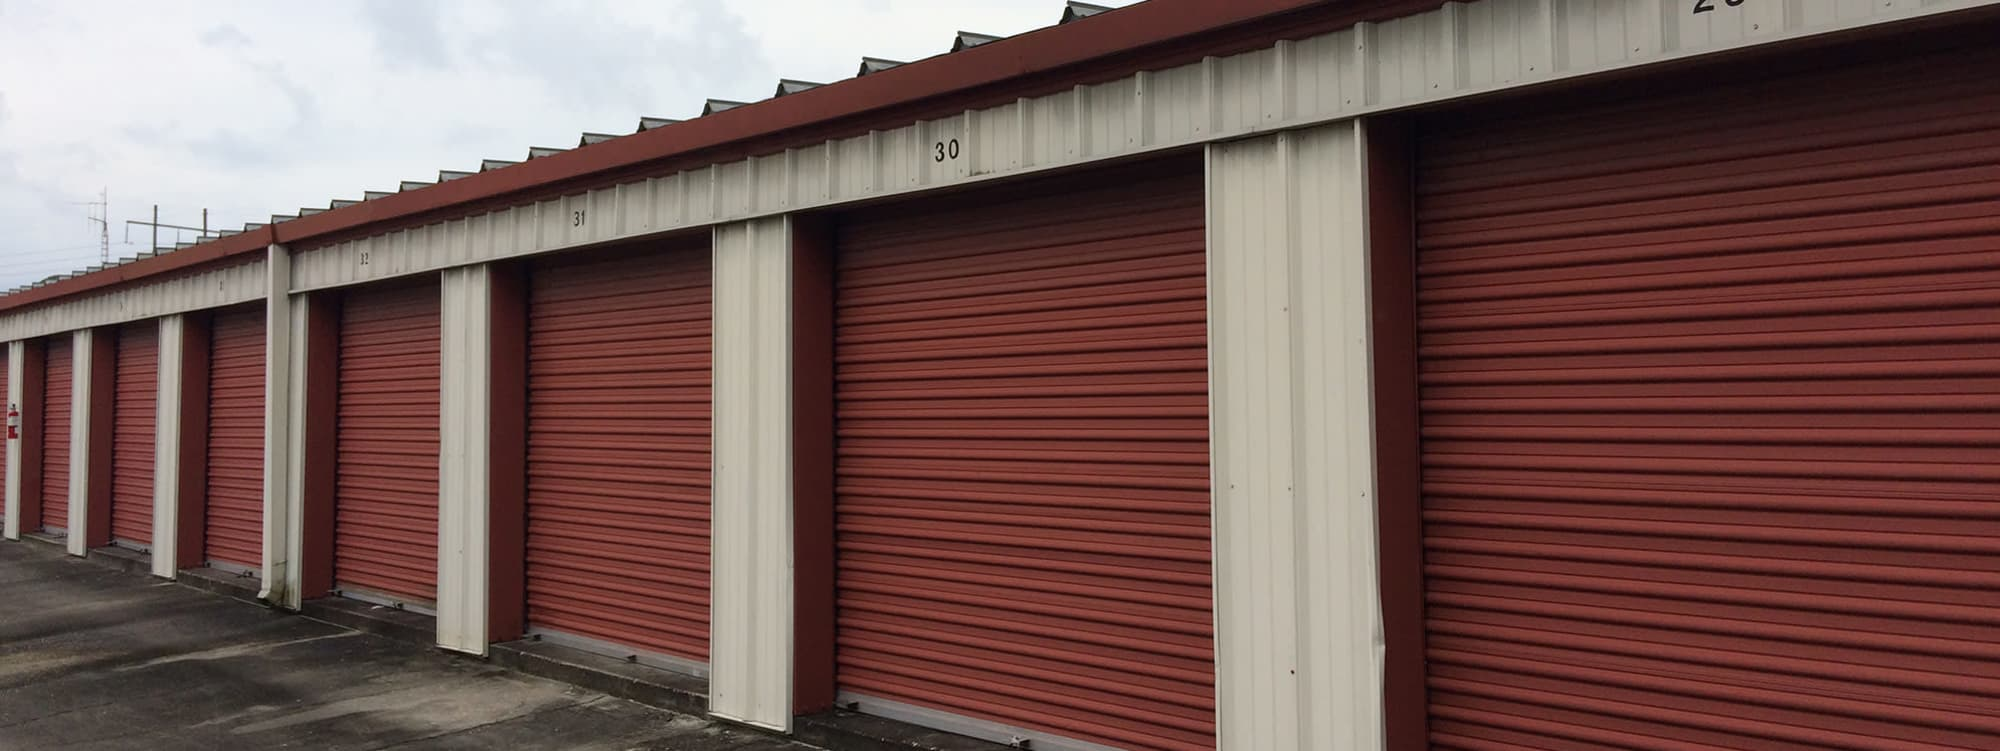 Self storage in Panama City FL